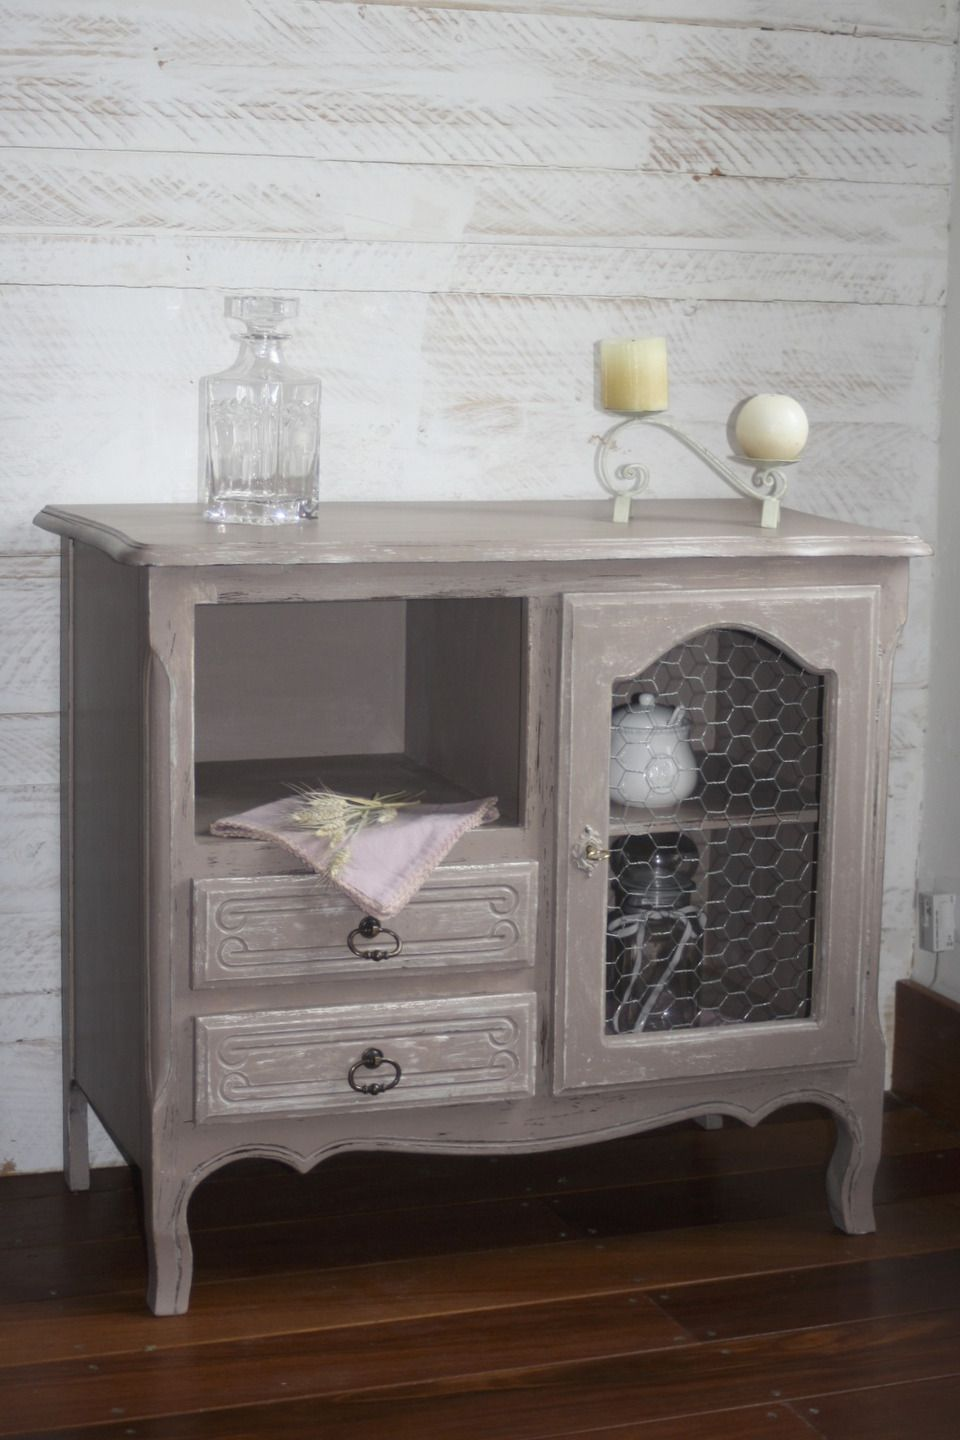 meuble bas patin e taupe avec grillage de poule. Black Bedroom Furniture Sets. Home Design Ideas